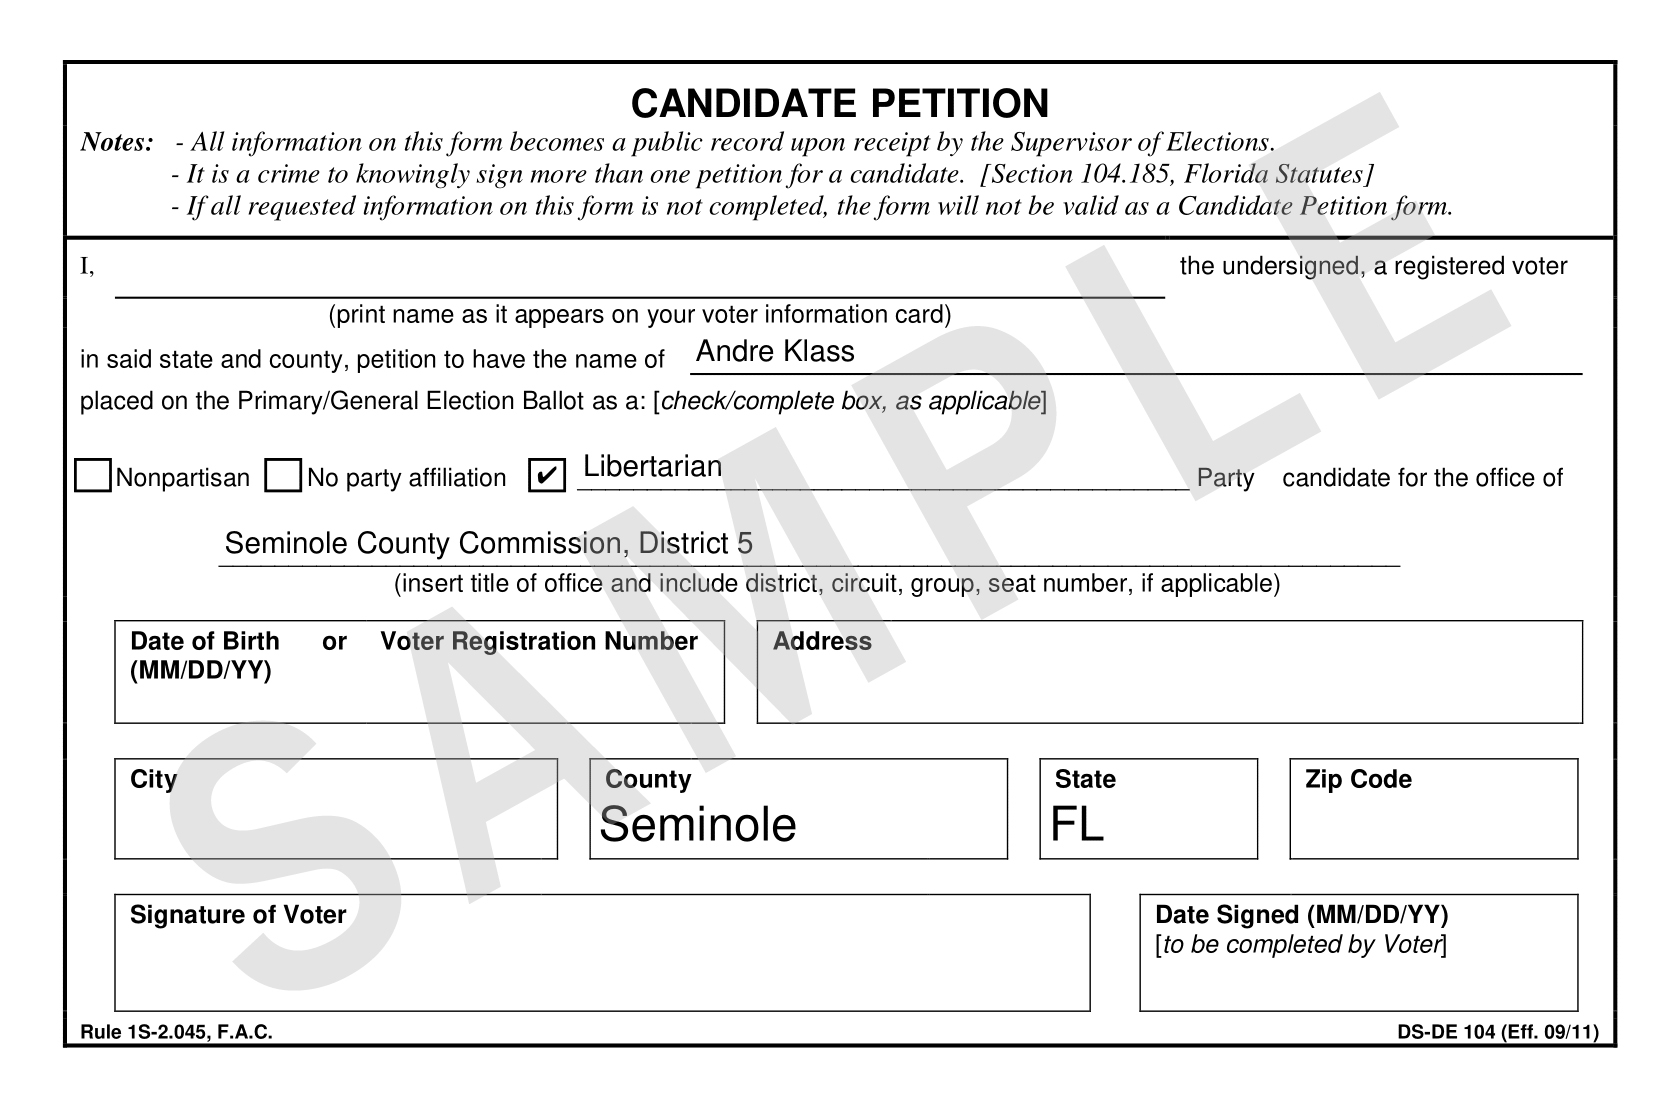 Andre Klass Candidate Petition Sample